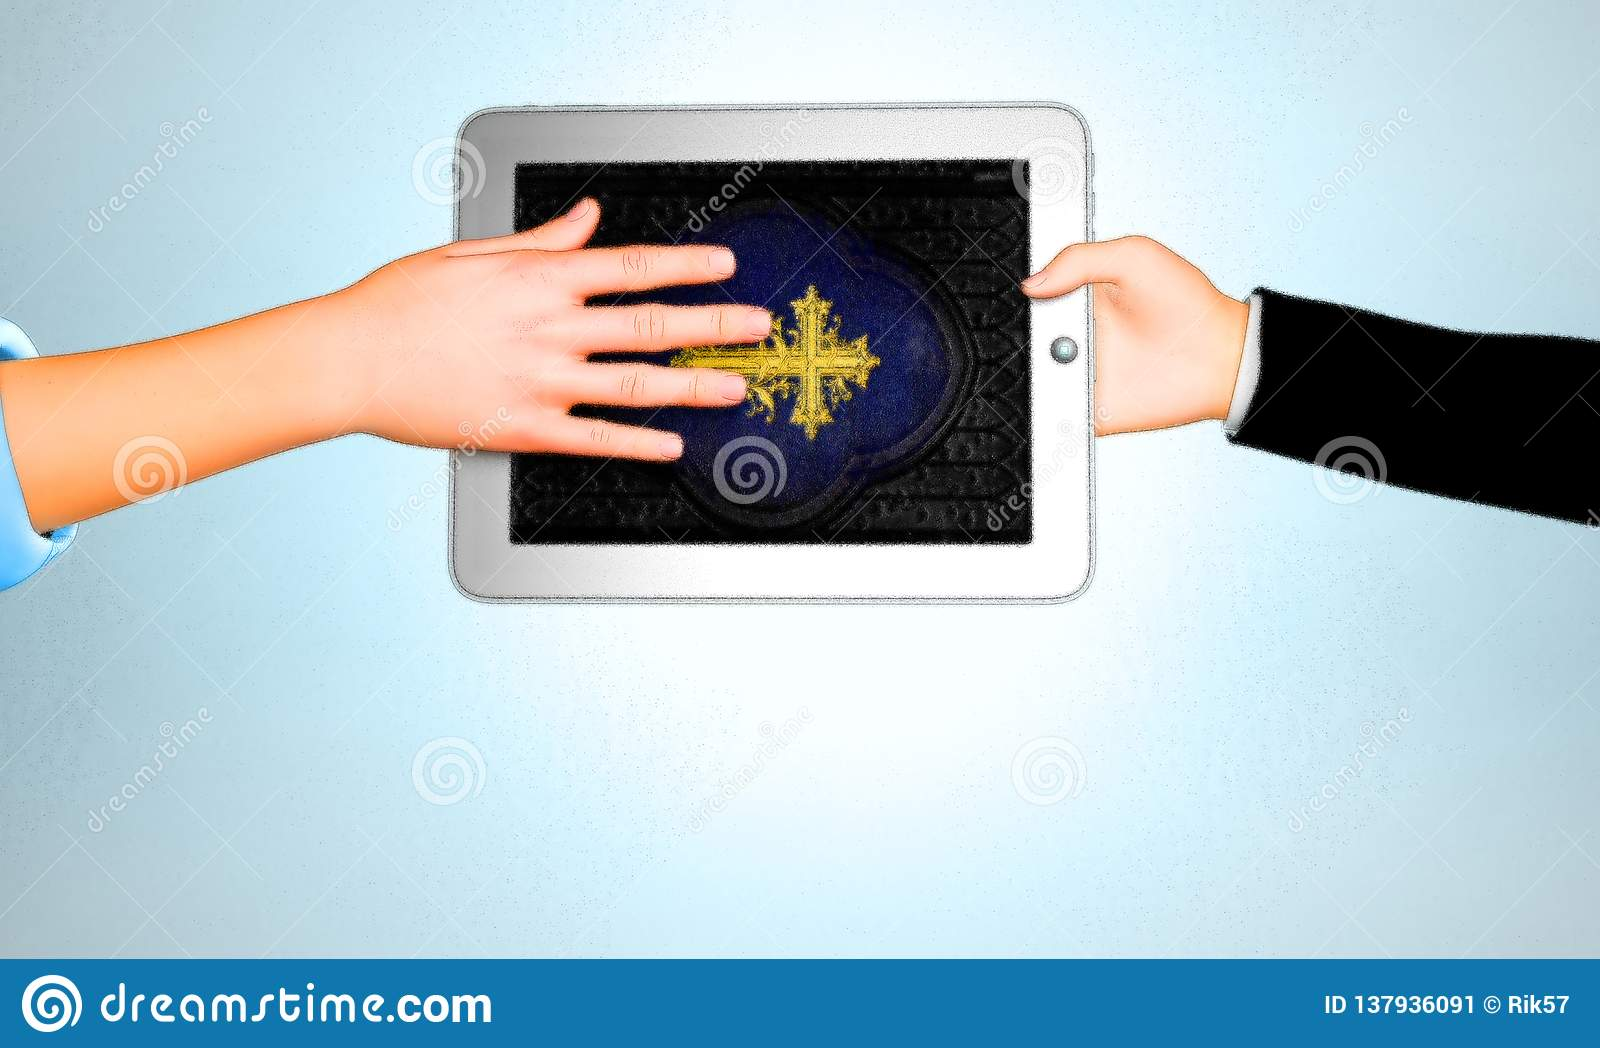 oath taking ceremony clipart - Clip Art Library